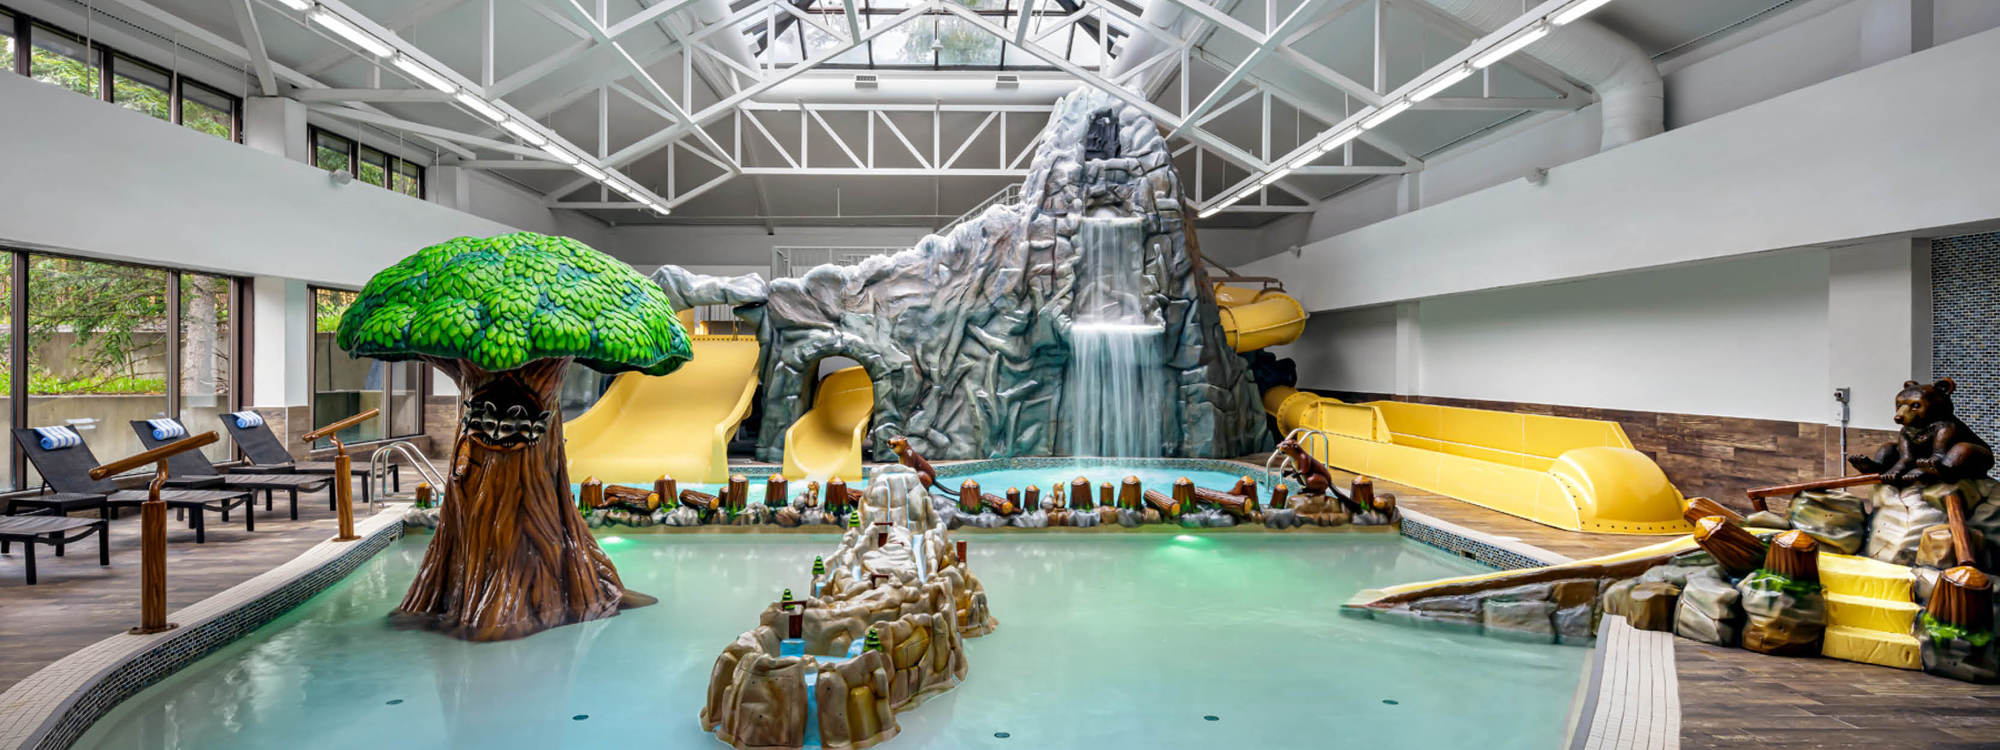 Indoor Waterpark at Pomeroy Kananaskis Mountain Lodge